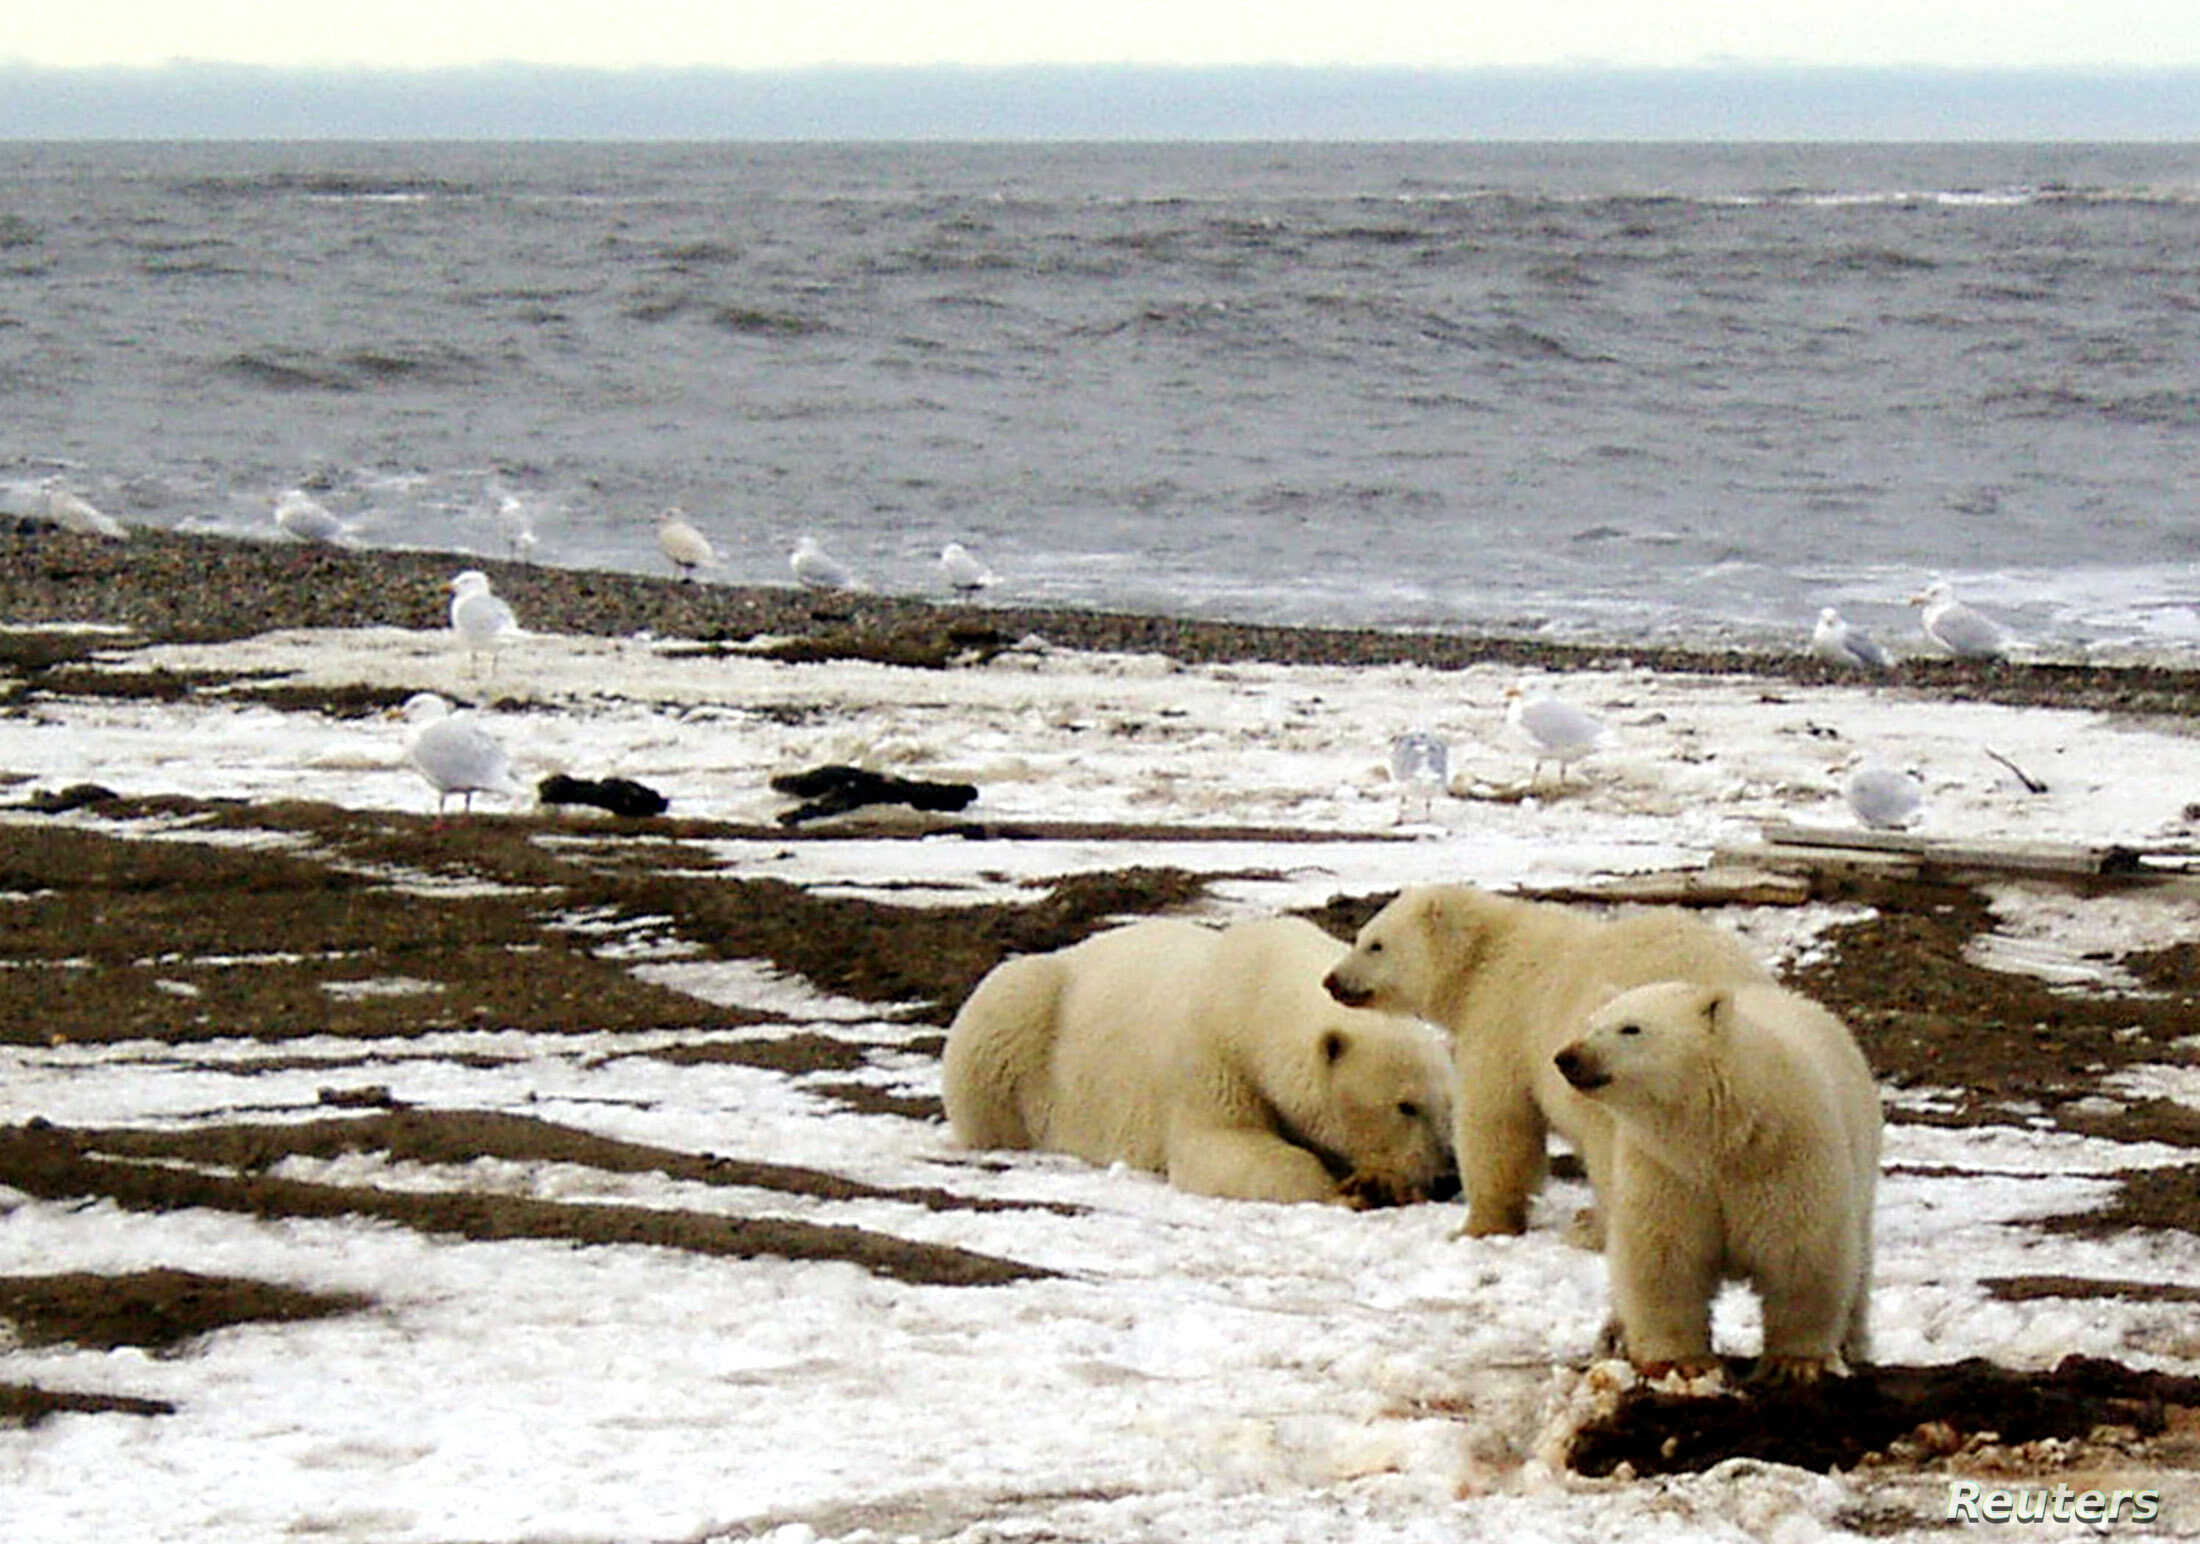 FILE - A polar bear sow and two cubs are seen on the Beaufort Sea coast within the 1002 Area of the Arctic National Wildlife Refuge in this undated handout photo provided by the U.S. Fish and Wildlife Service Alaska Image Library.